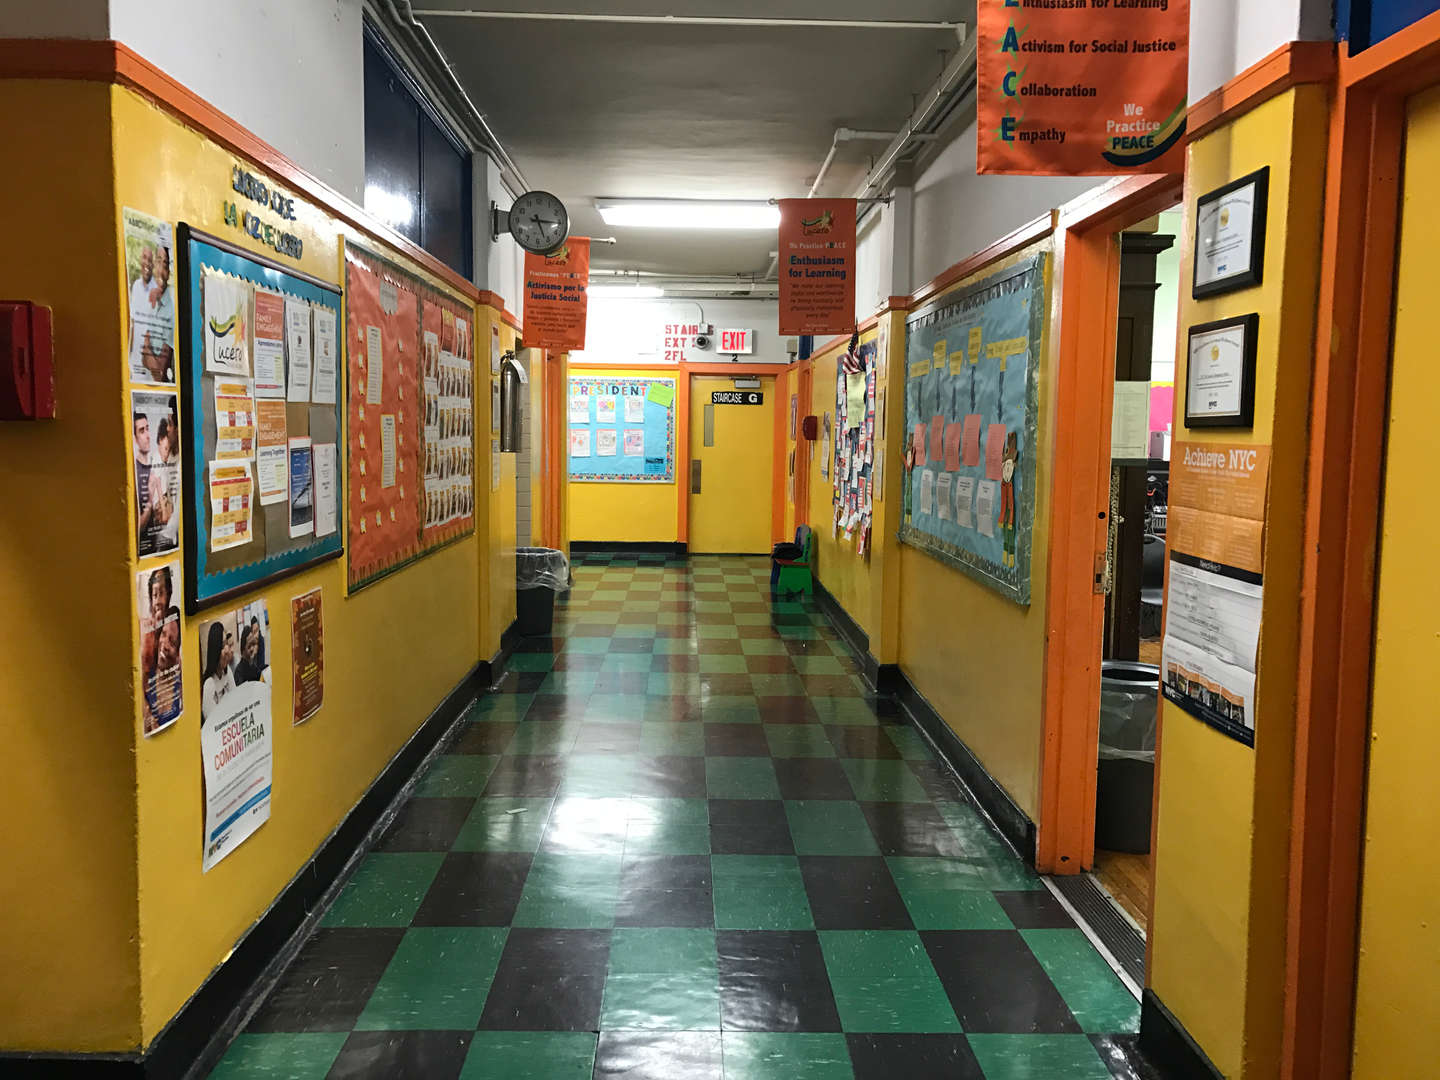 A view of an interior hallway of the school.